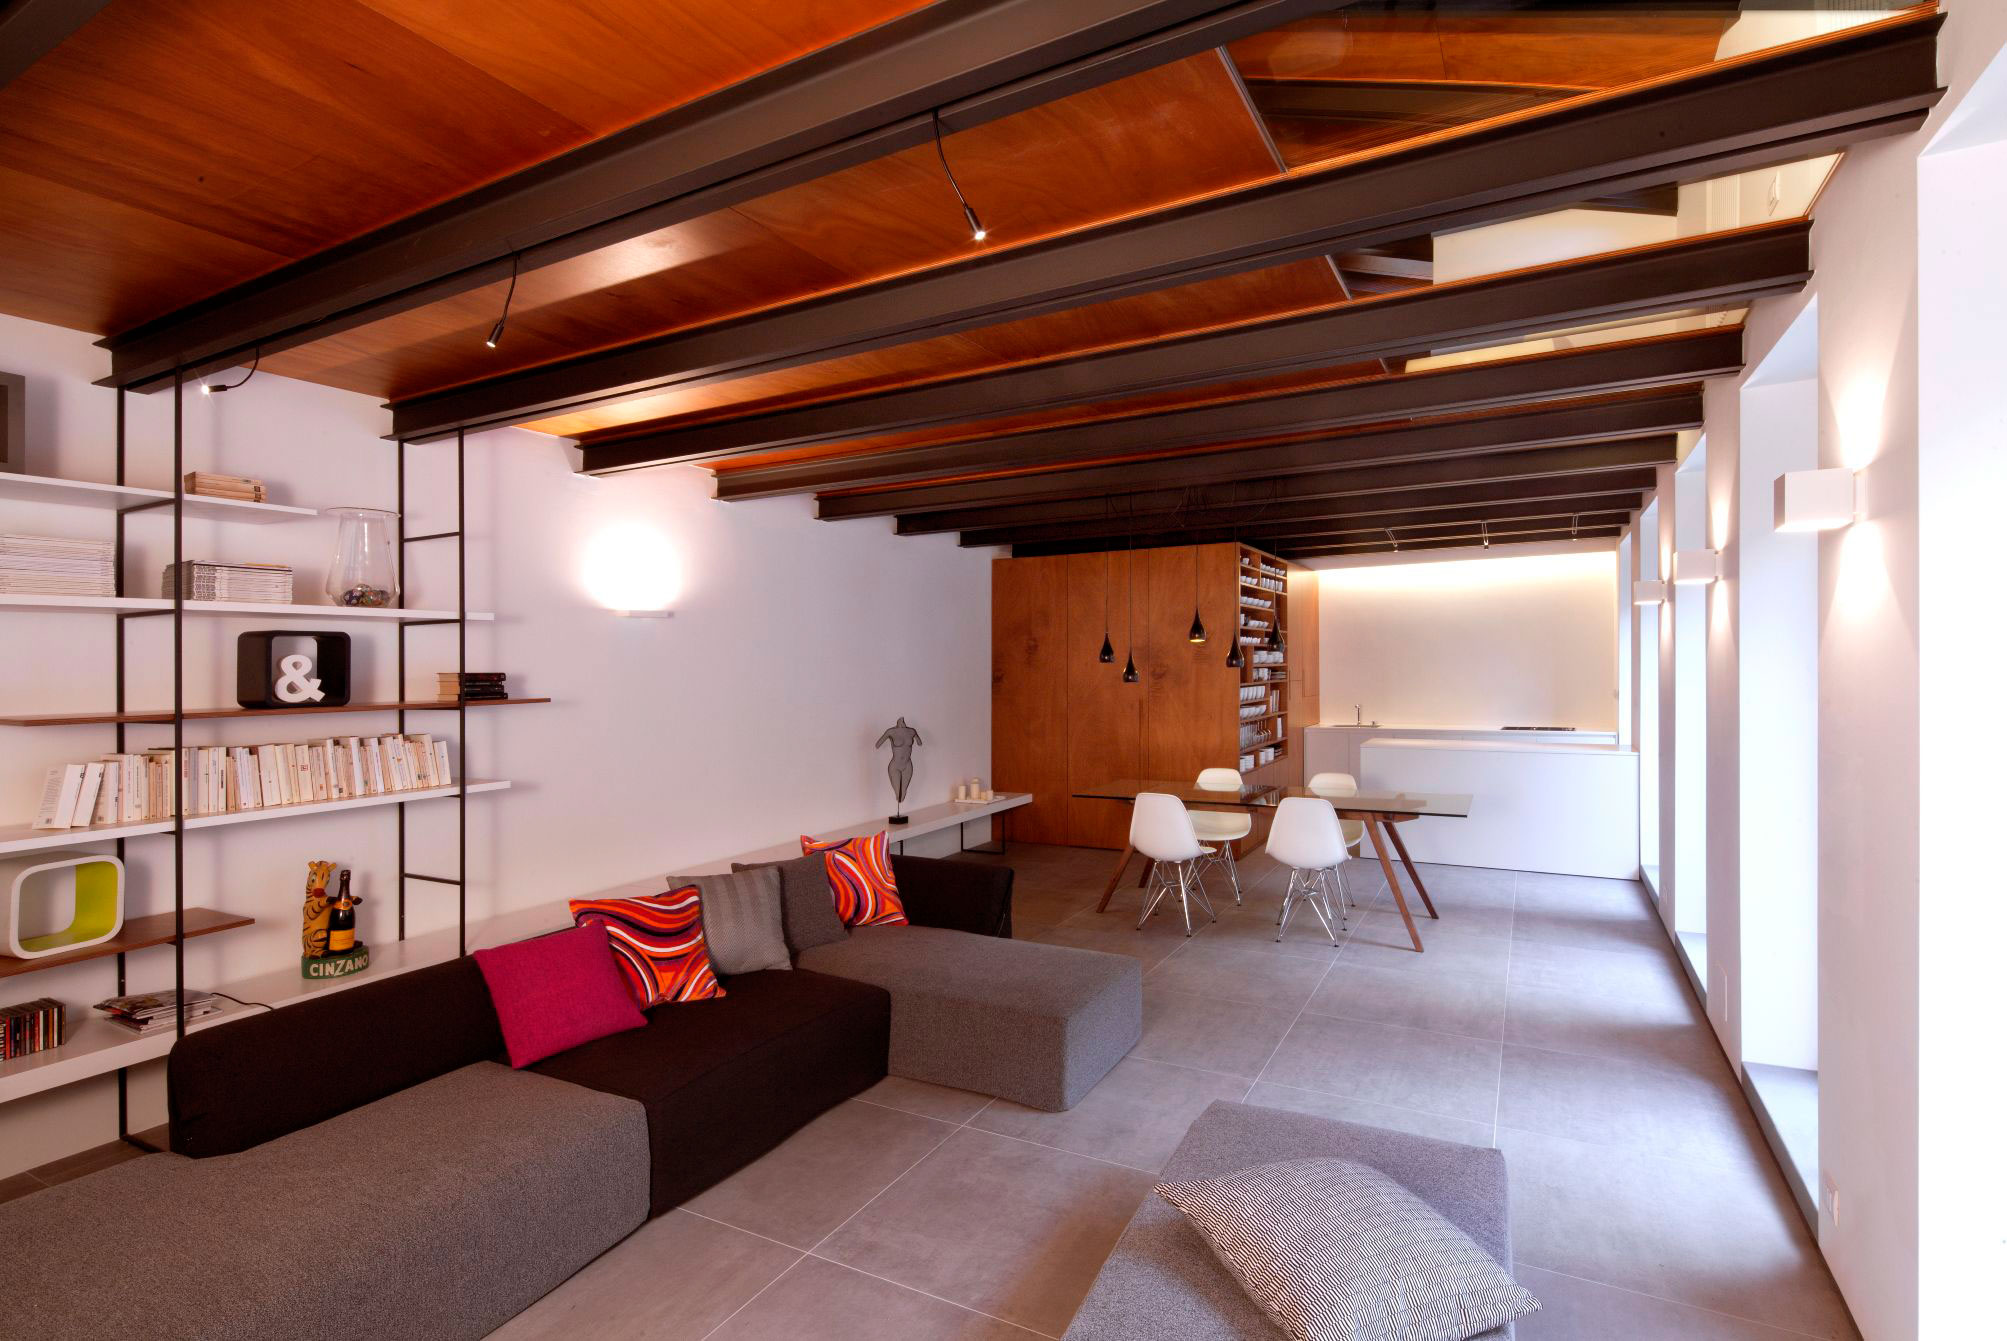 Paola Maré Turns an Old Carpentry into a Contemporary Loft in Turin, Italy